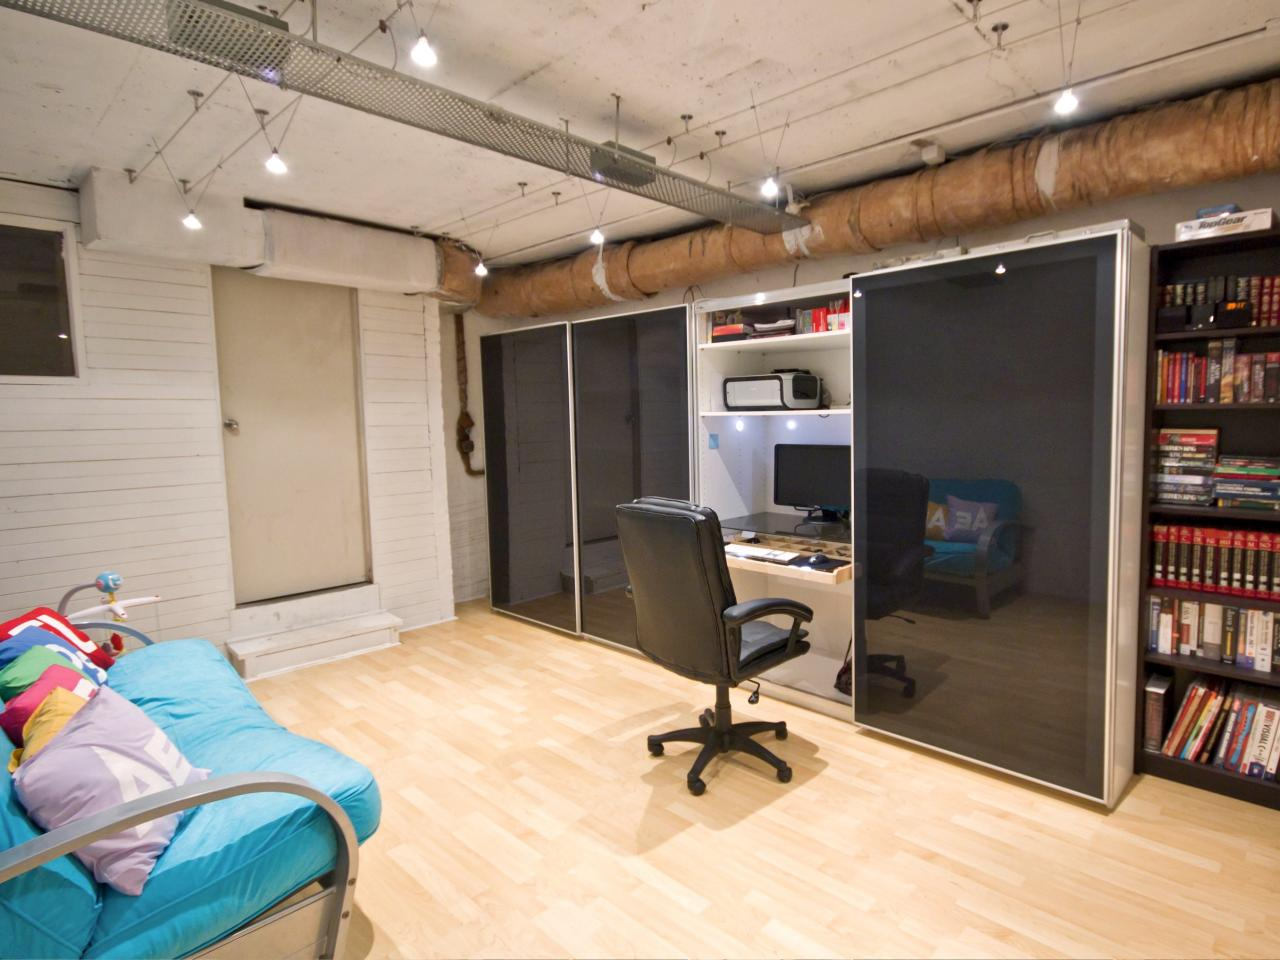 Excellent 15 Closets Turned Into Space Saving Office Nooks Largest Home Design Picture Inspirations Pitcheantrous